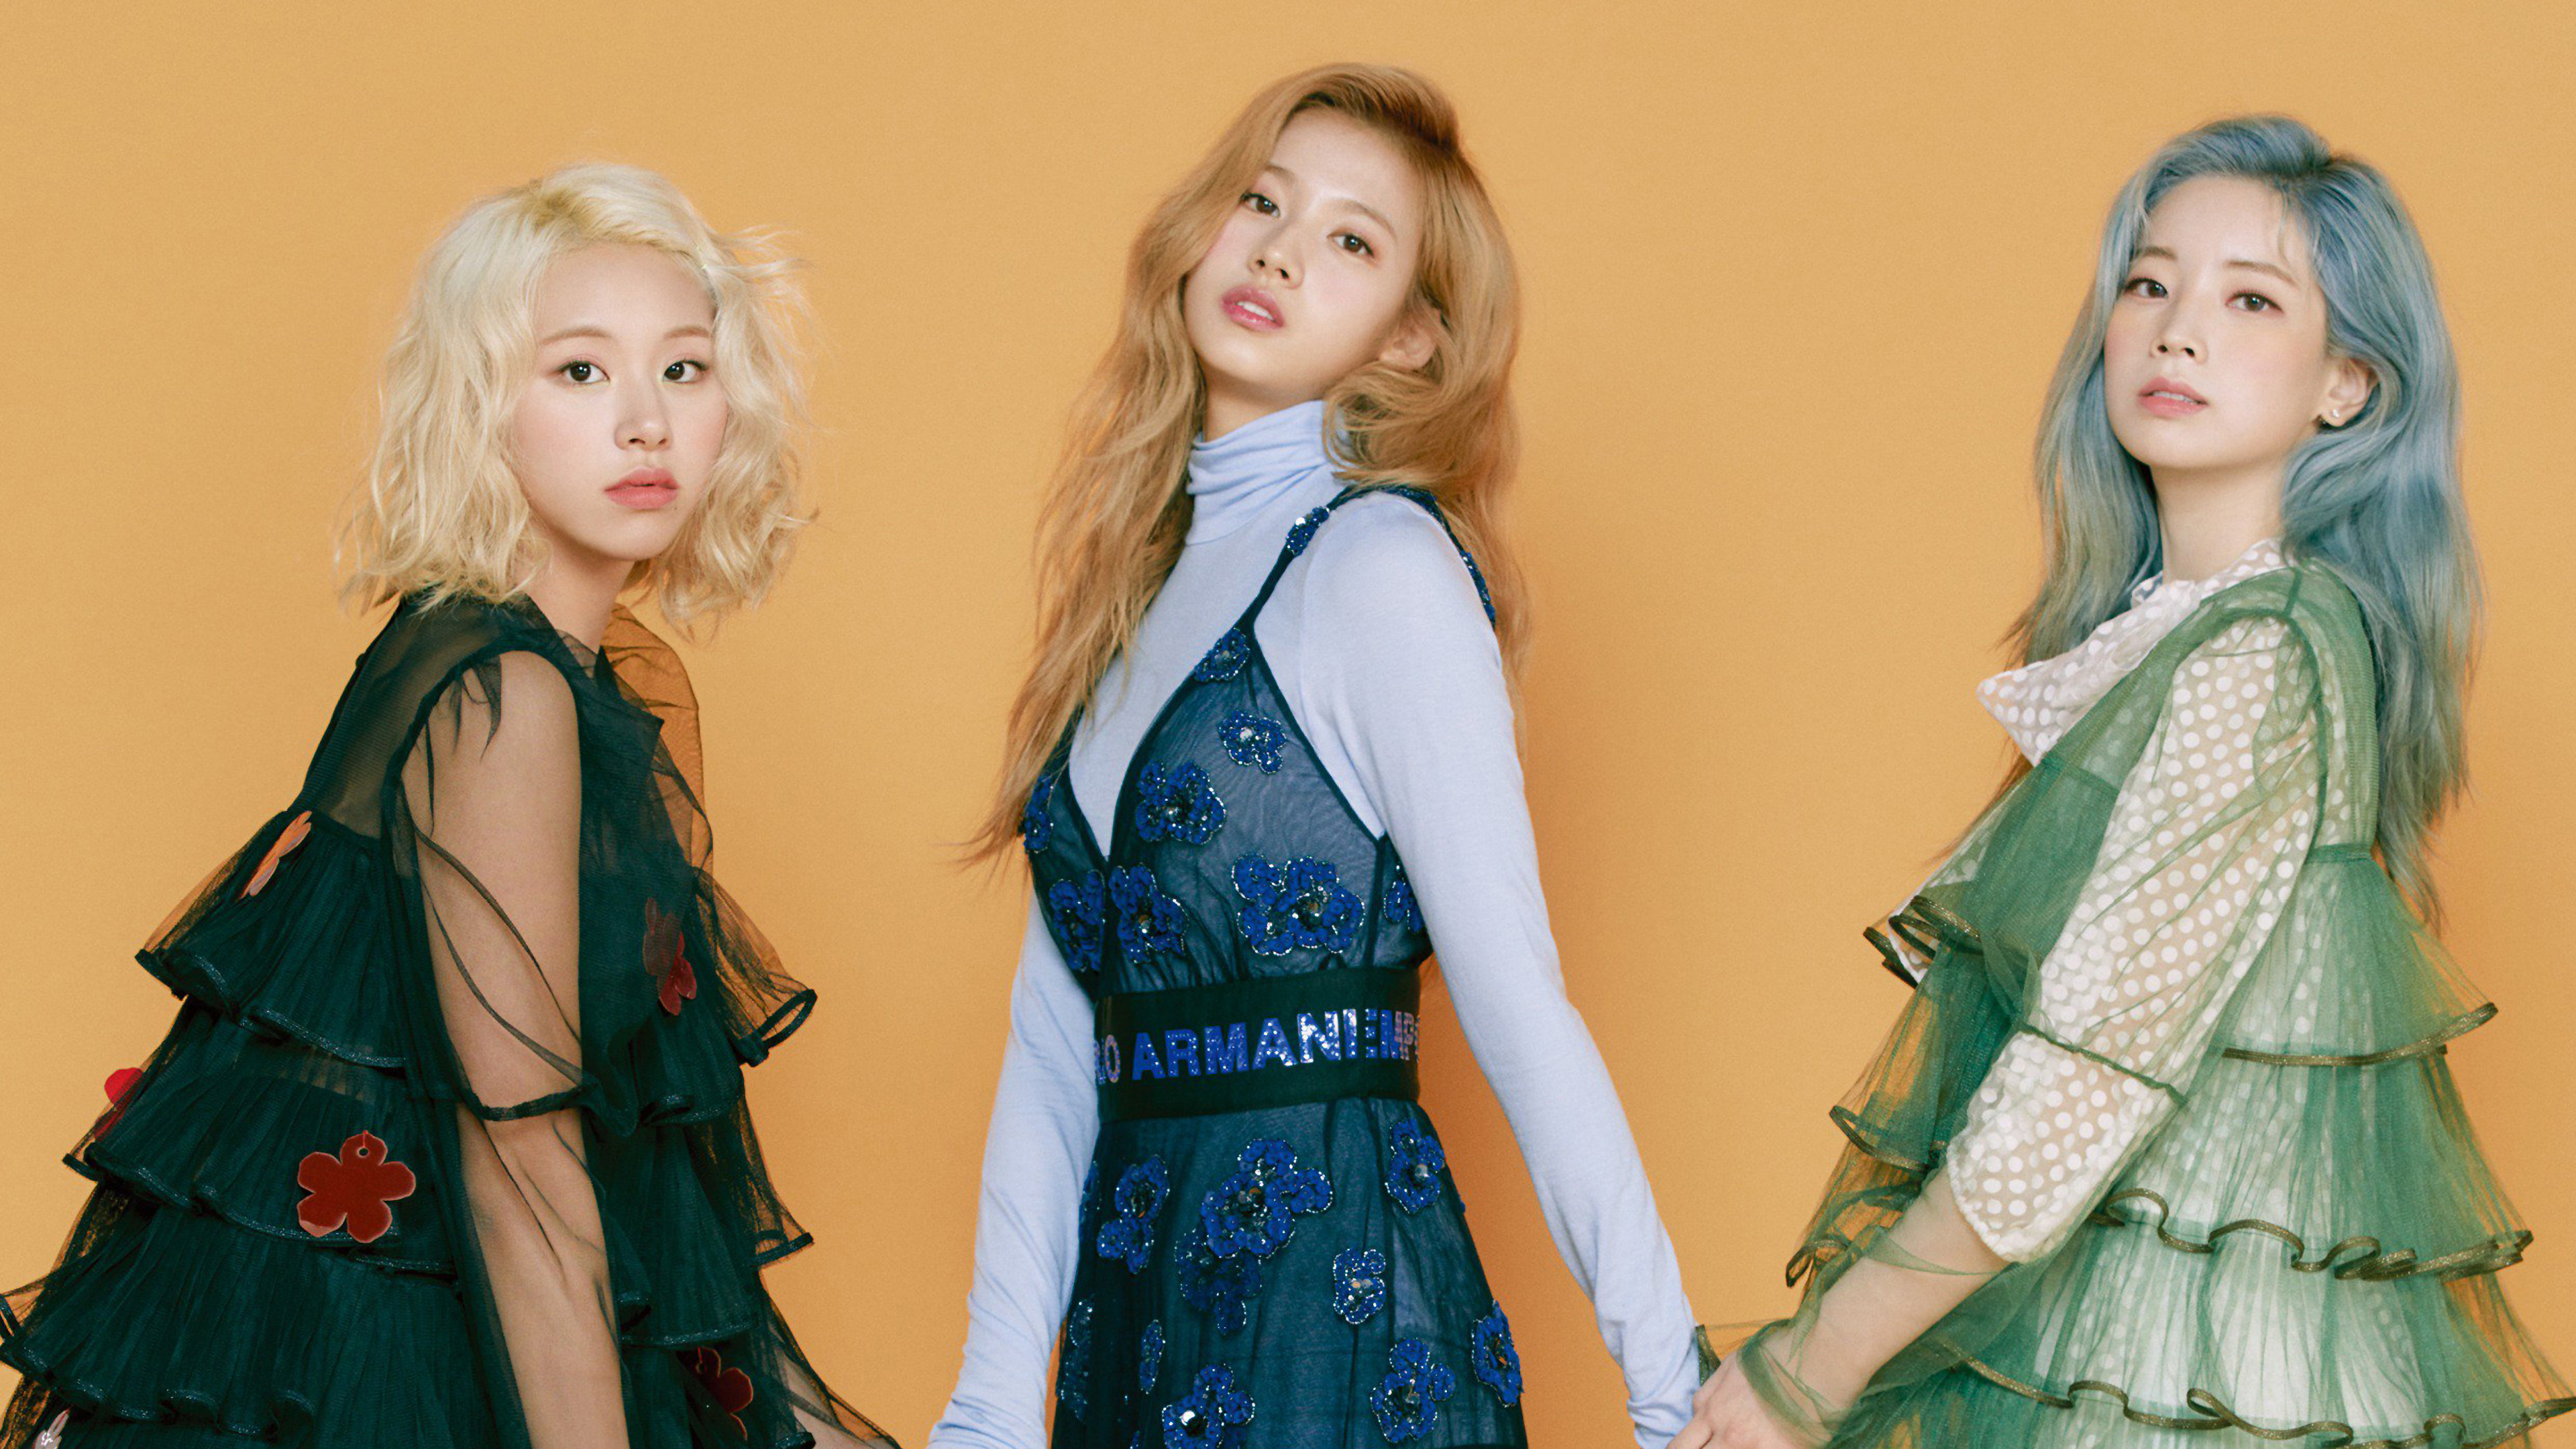 Twice Chaeyoung Sana Dahyun Allure 4k Wallpaper Twice Sana Chaeyoung Dahyun 3057123 Hd Wallpaper Backgrounds Download